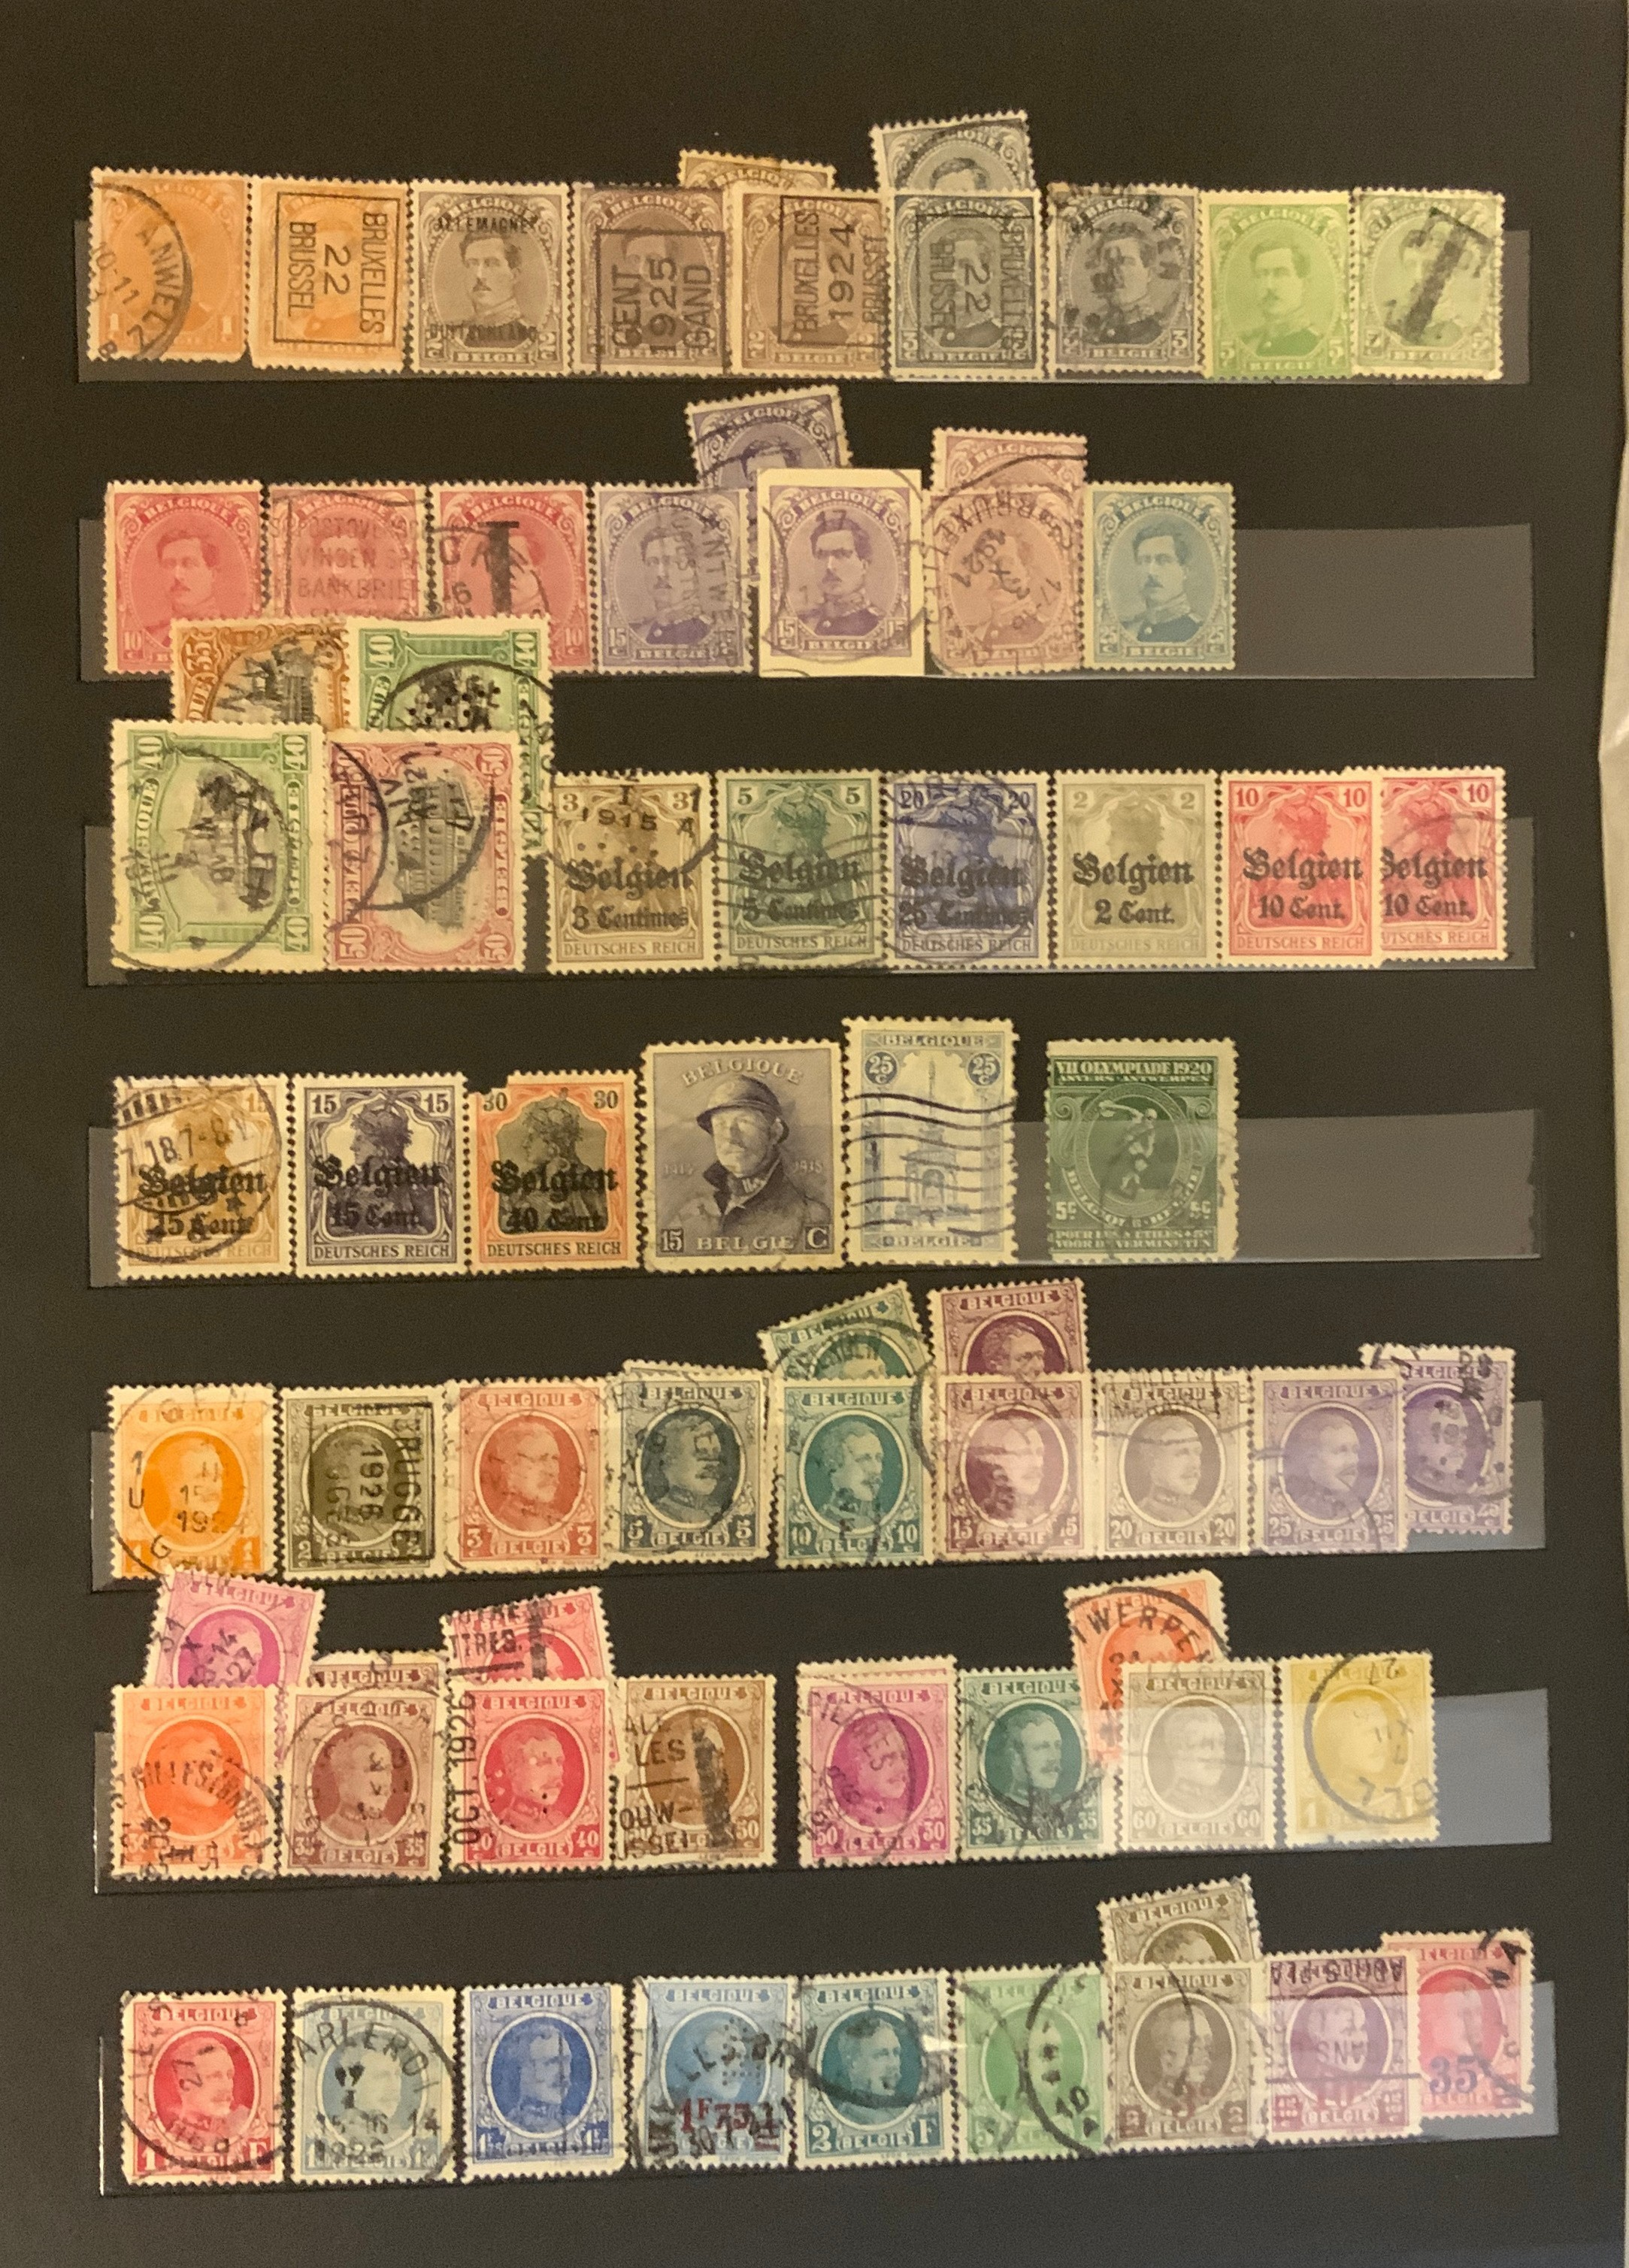 STOCKBOOK WITH STAMPS FROM VARIOUS COUNTRIES INCLUDING AUSTRIA, BELGIUM, FRANCE - Image 11 of 16